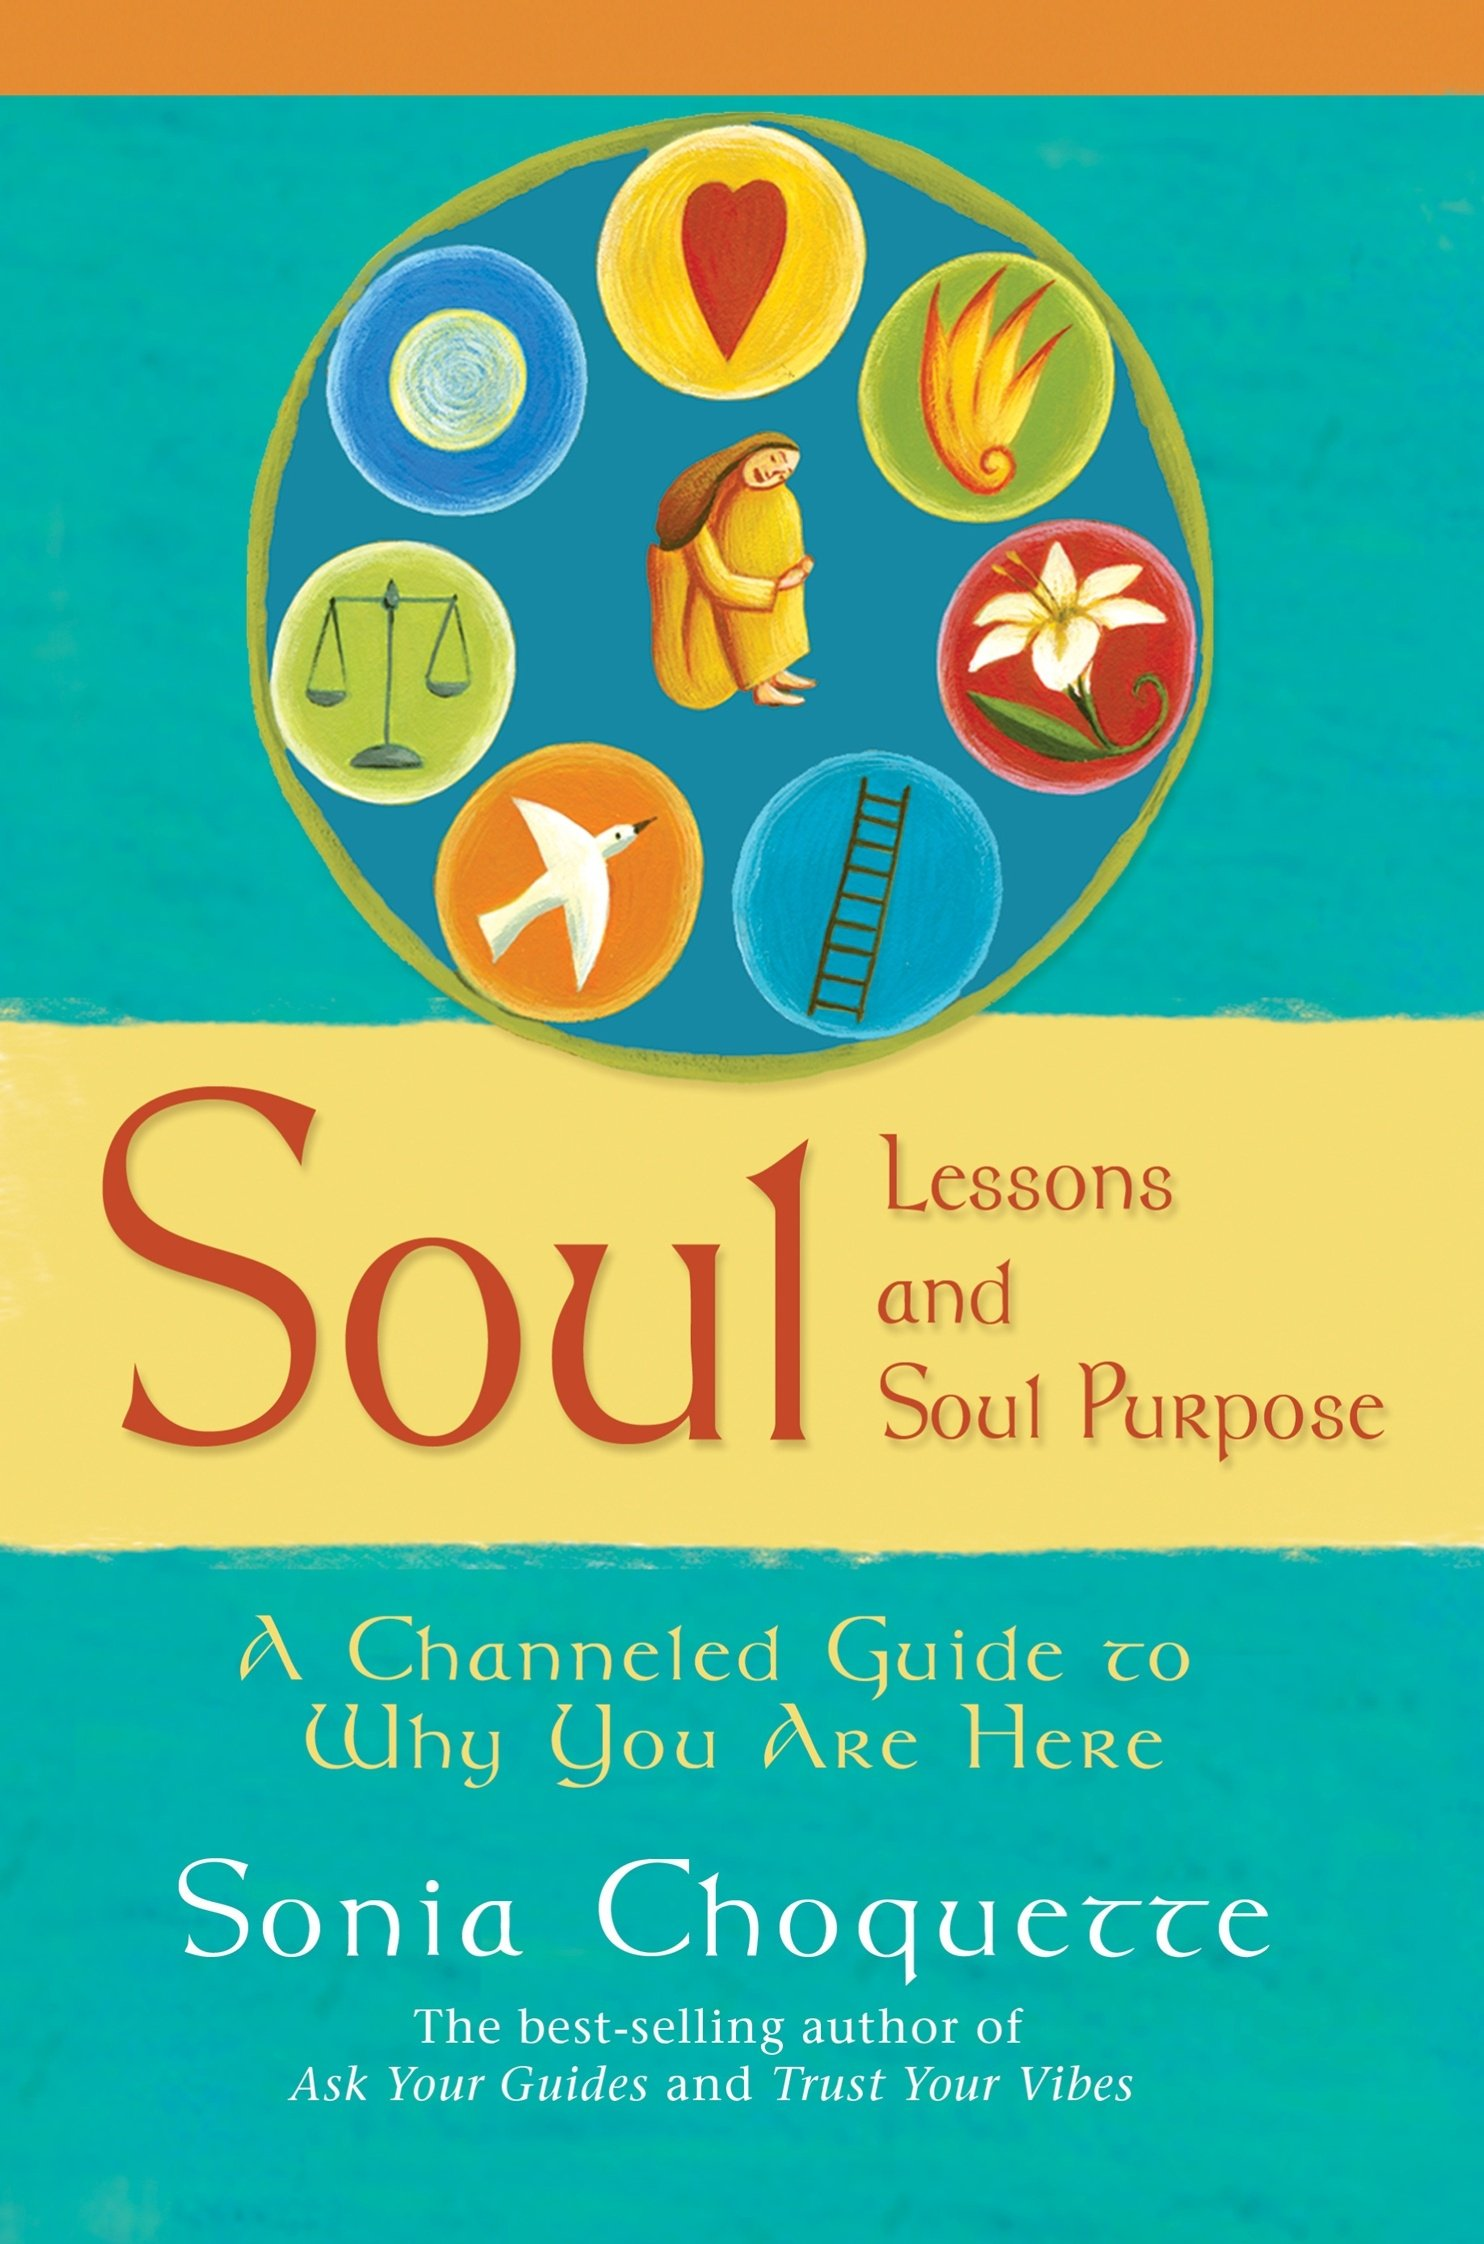 soul lessons and soul purpose by sonia choquottes online to read